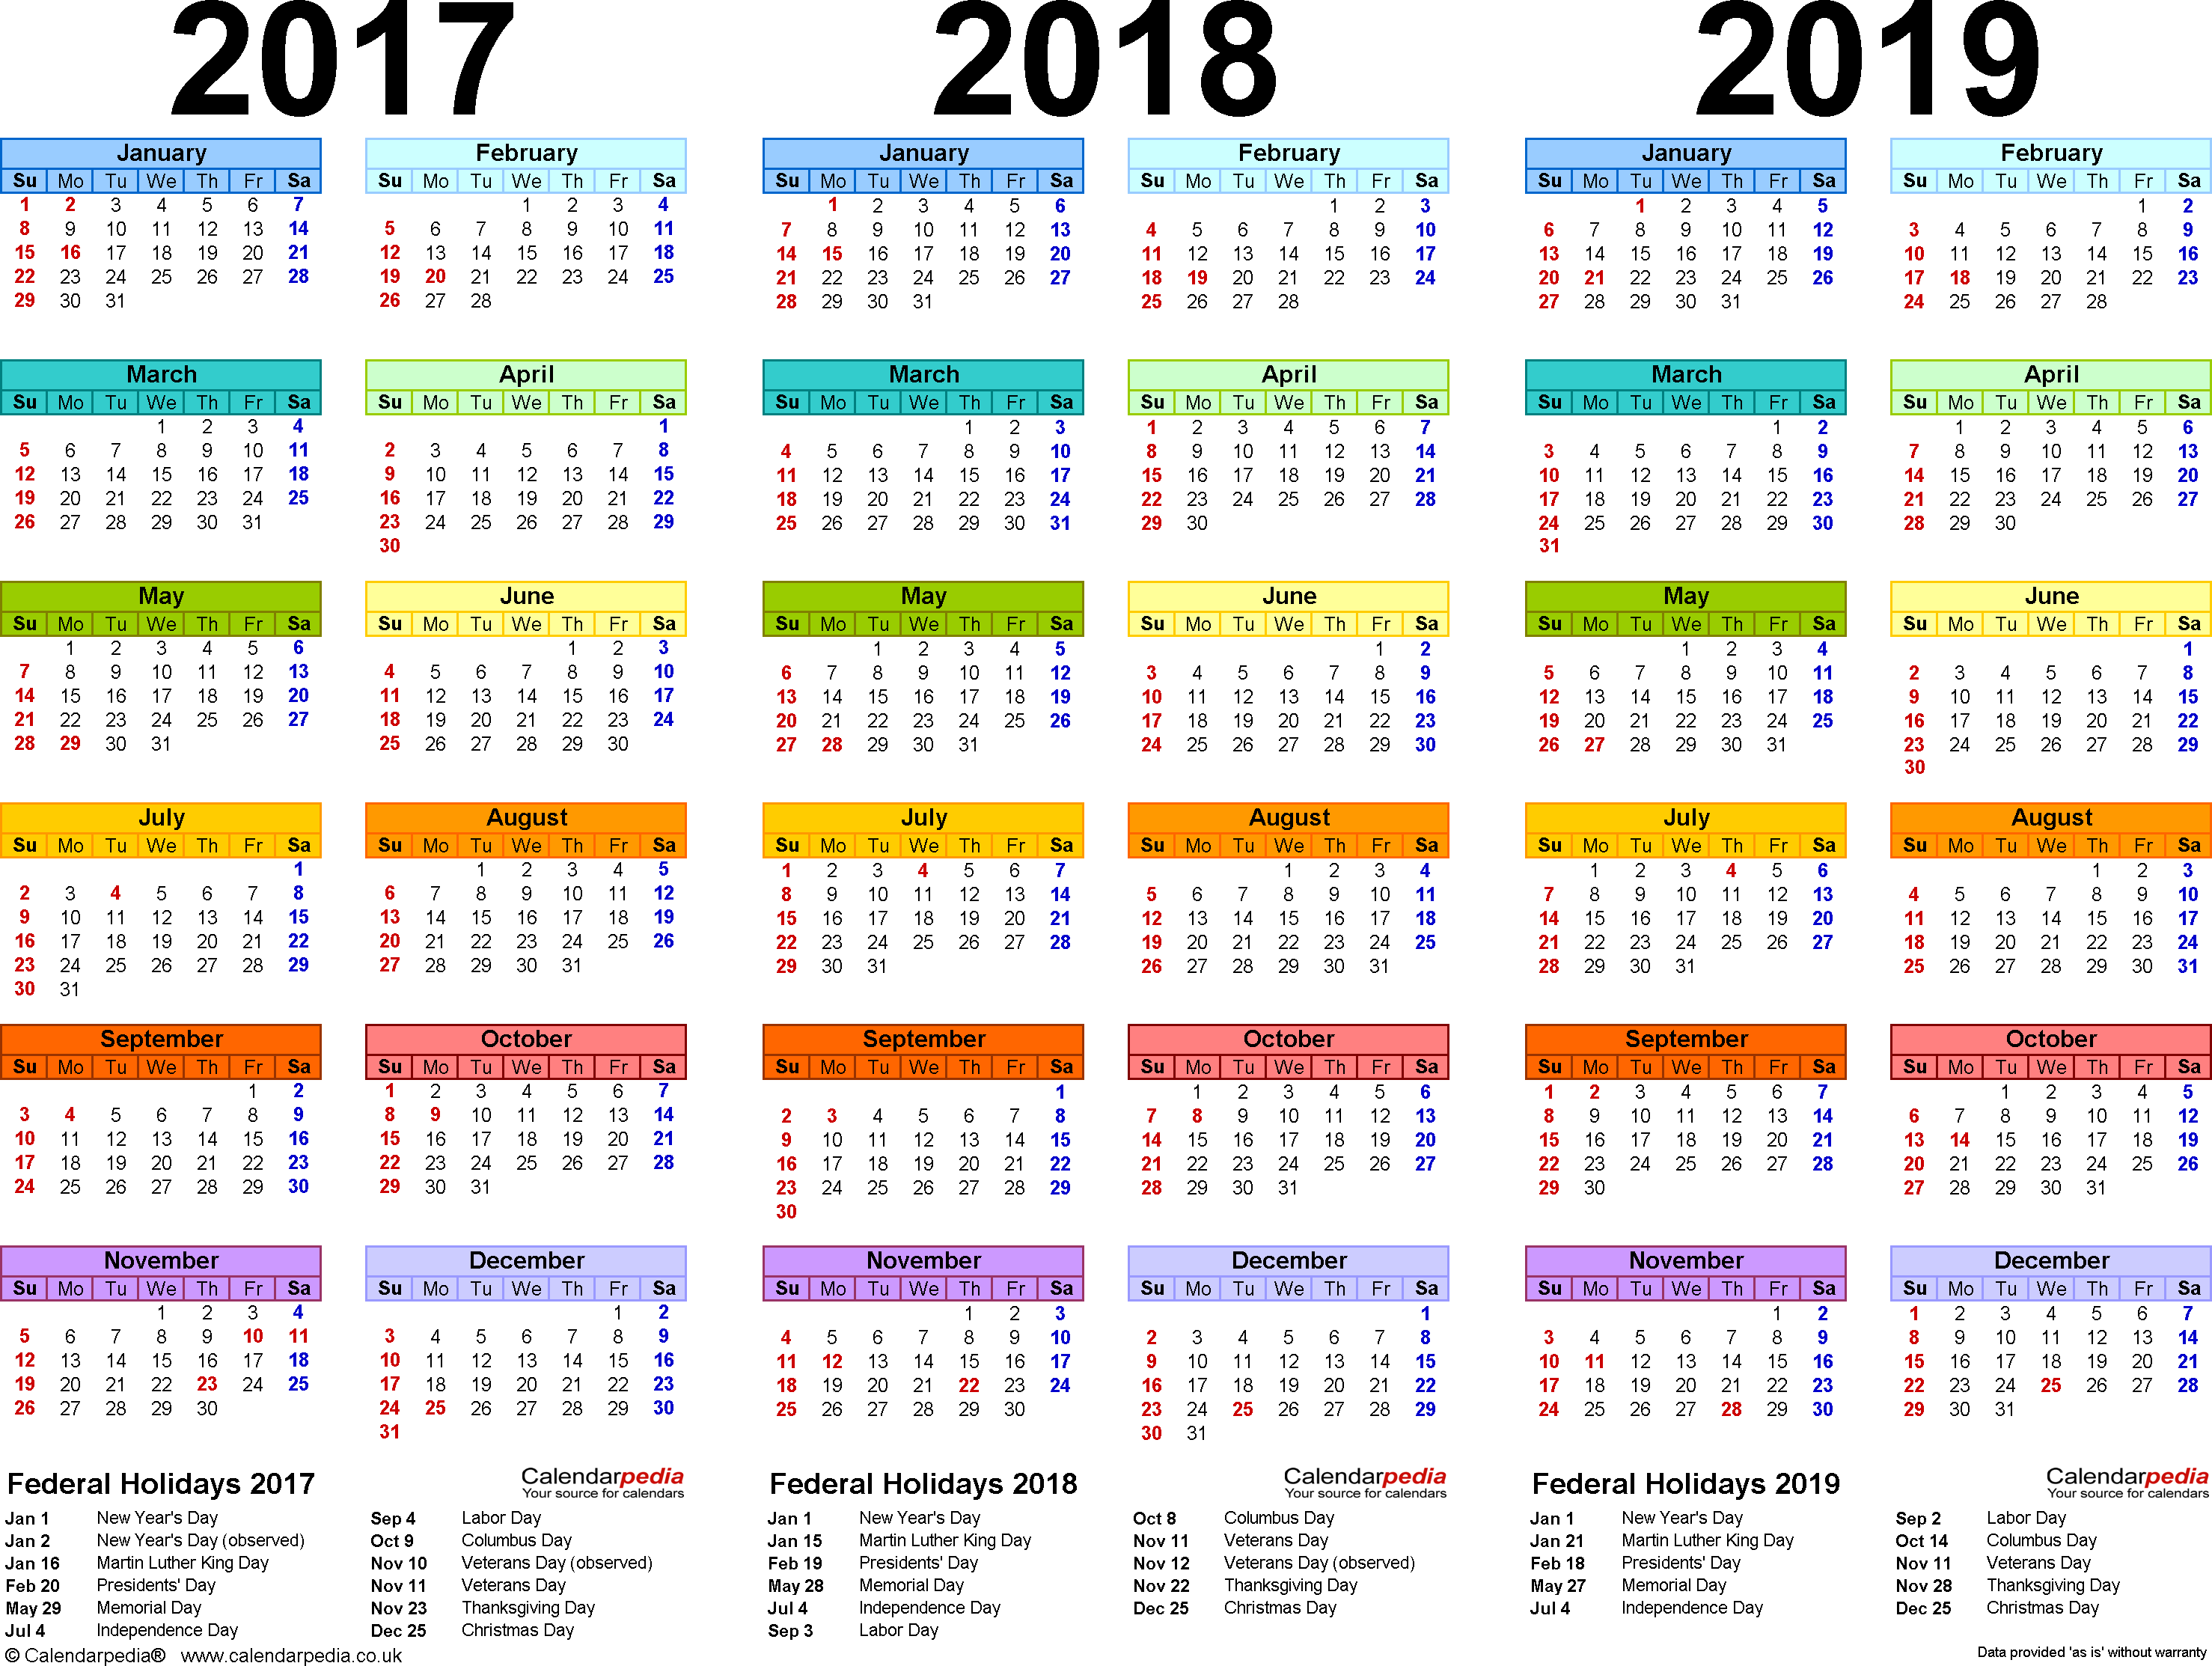 Template 1: Word template for three year calendar 2017/2018/2019 (landscape orientation, 1 page, in color)